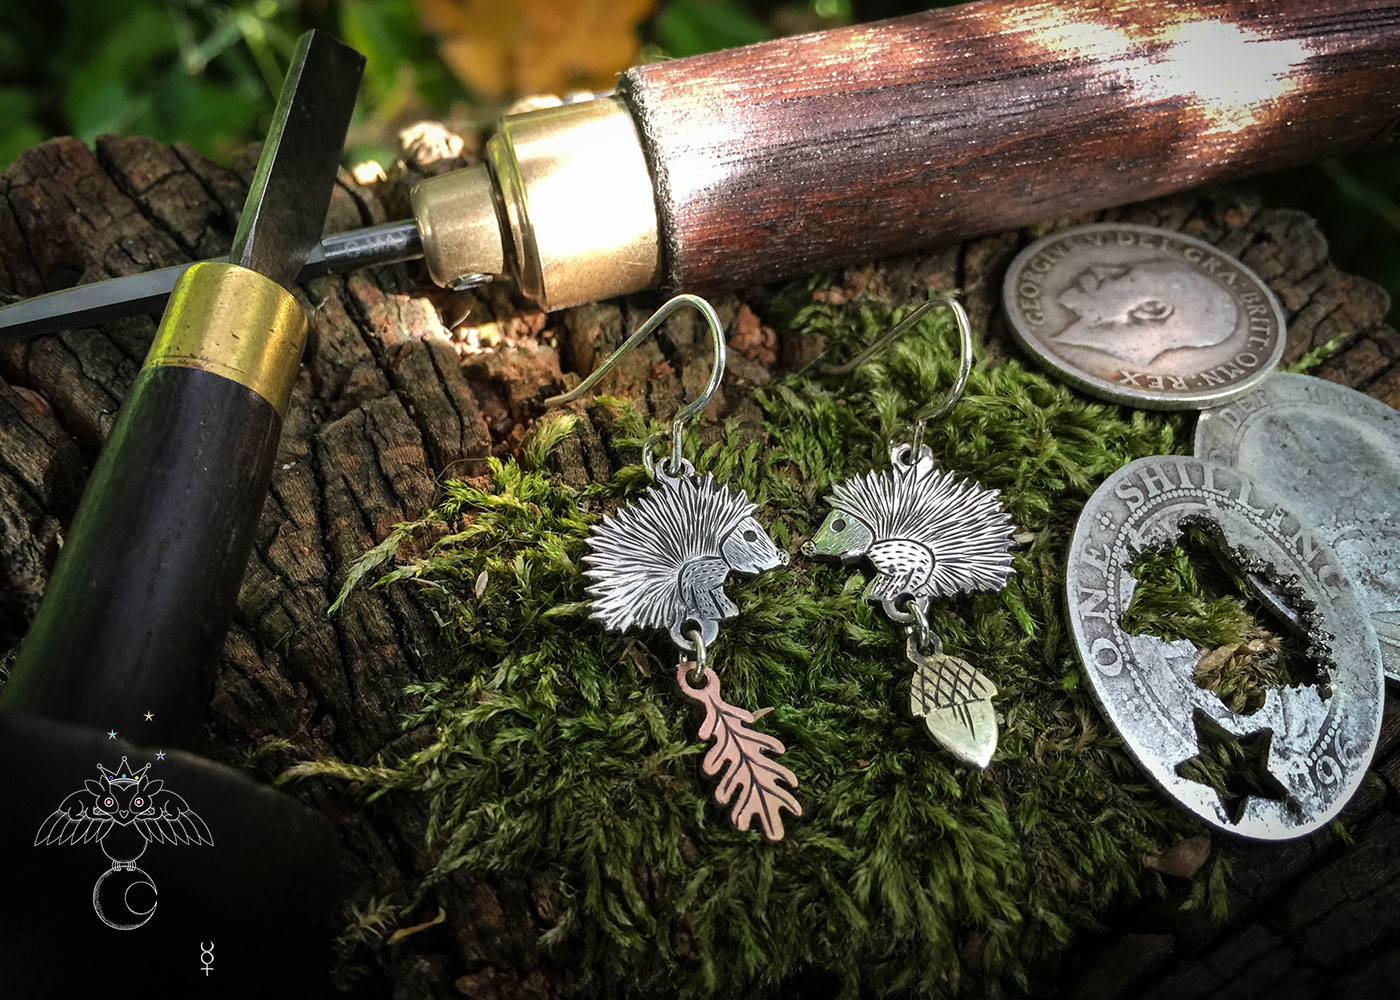 handcrafted hedgehog earrings recycled from silver coins by independent jeweller, jewellery designer